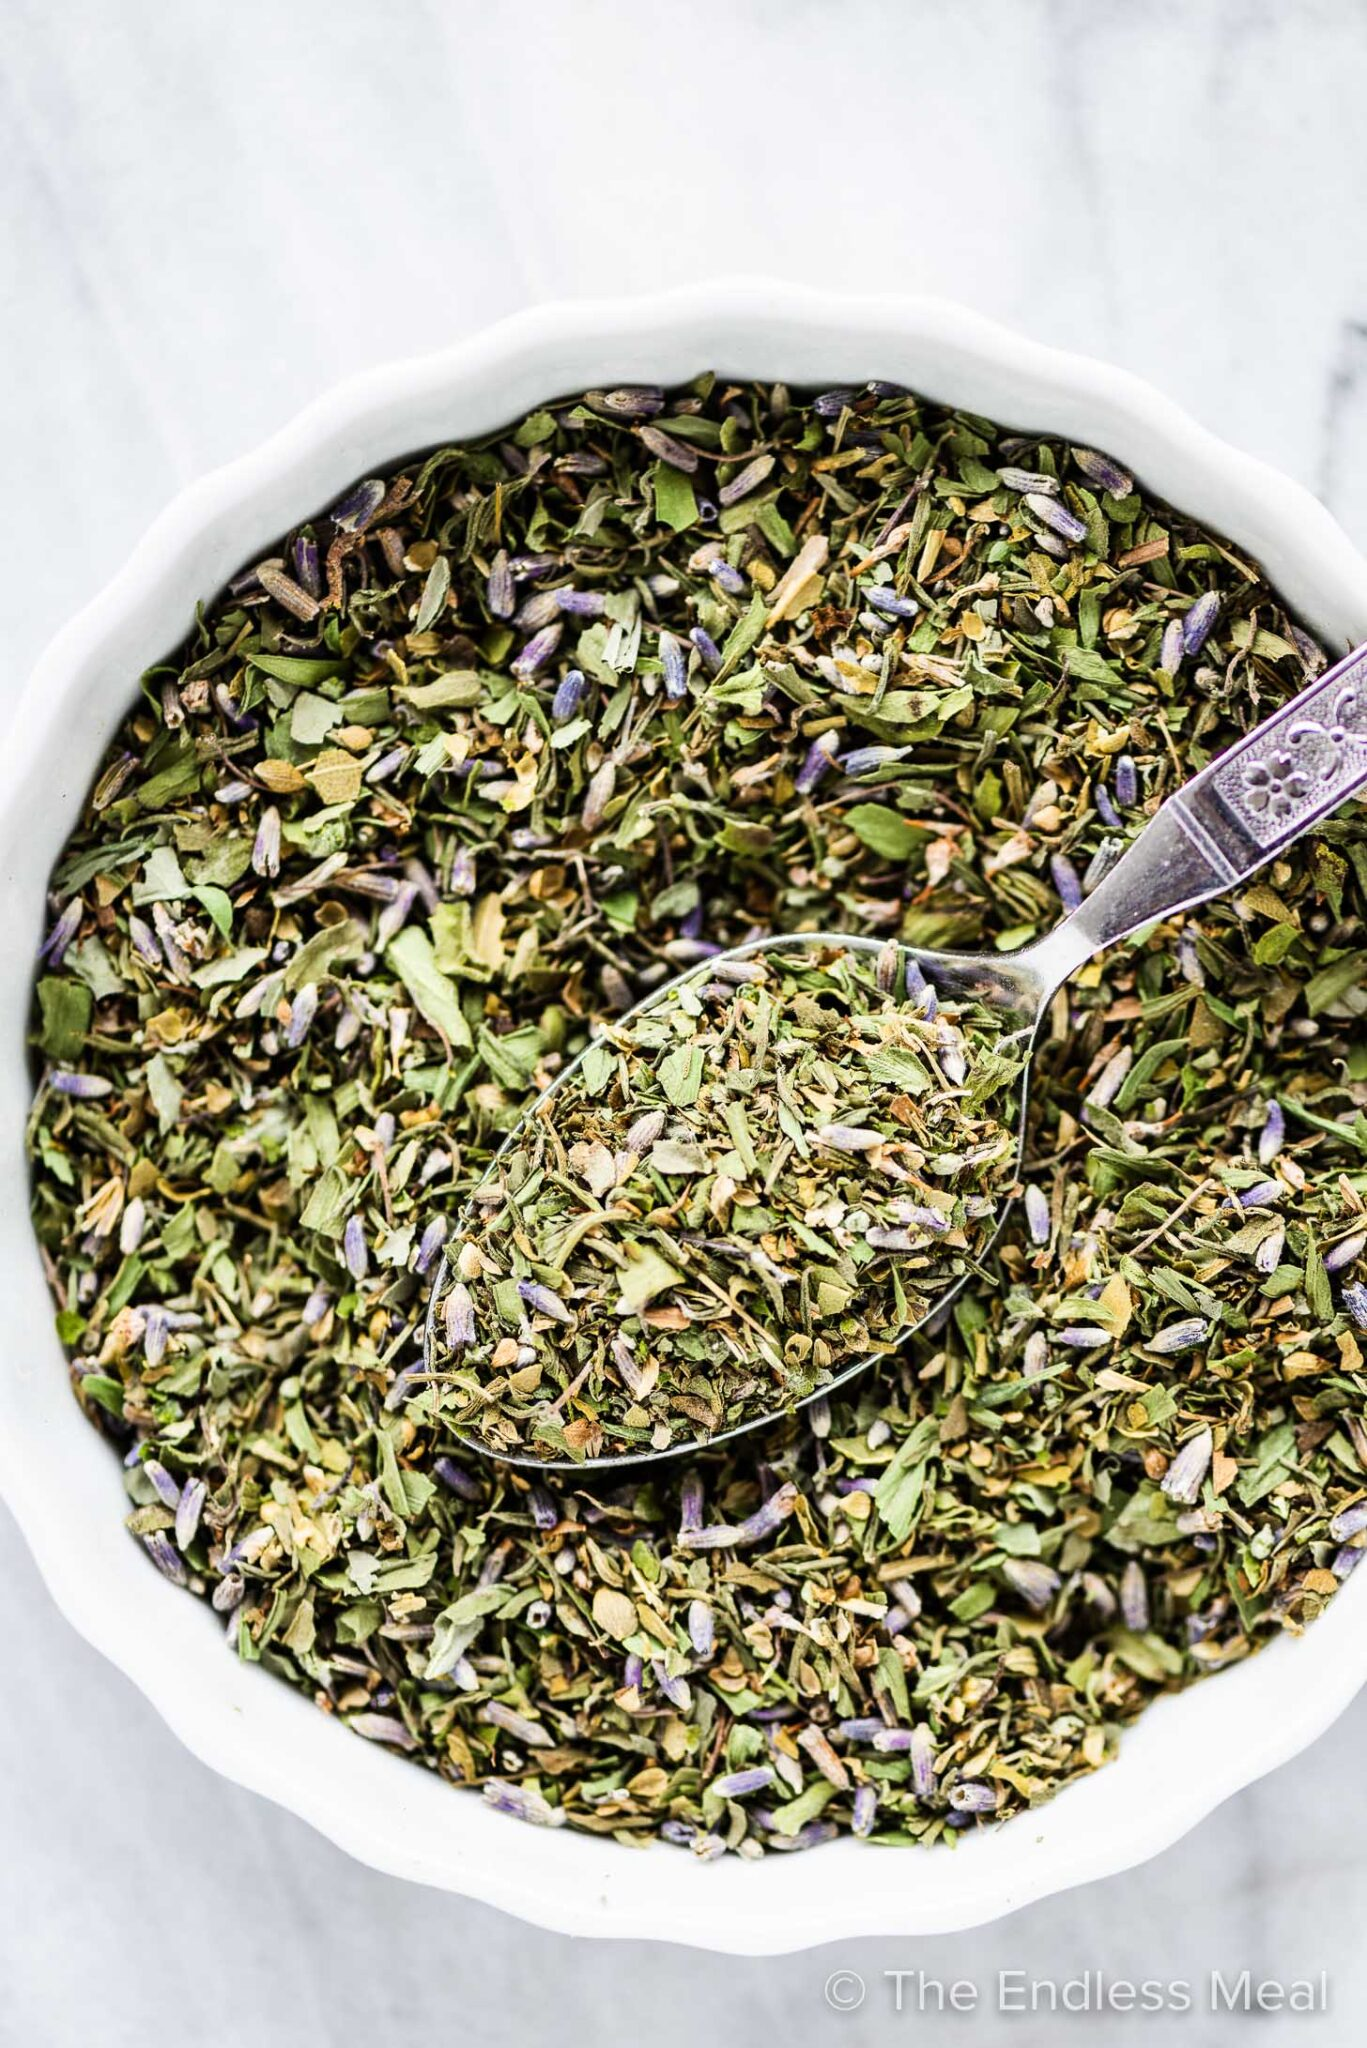 A bowl with herbs de provence and a spoon mixing it.